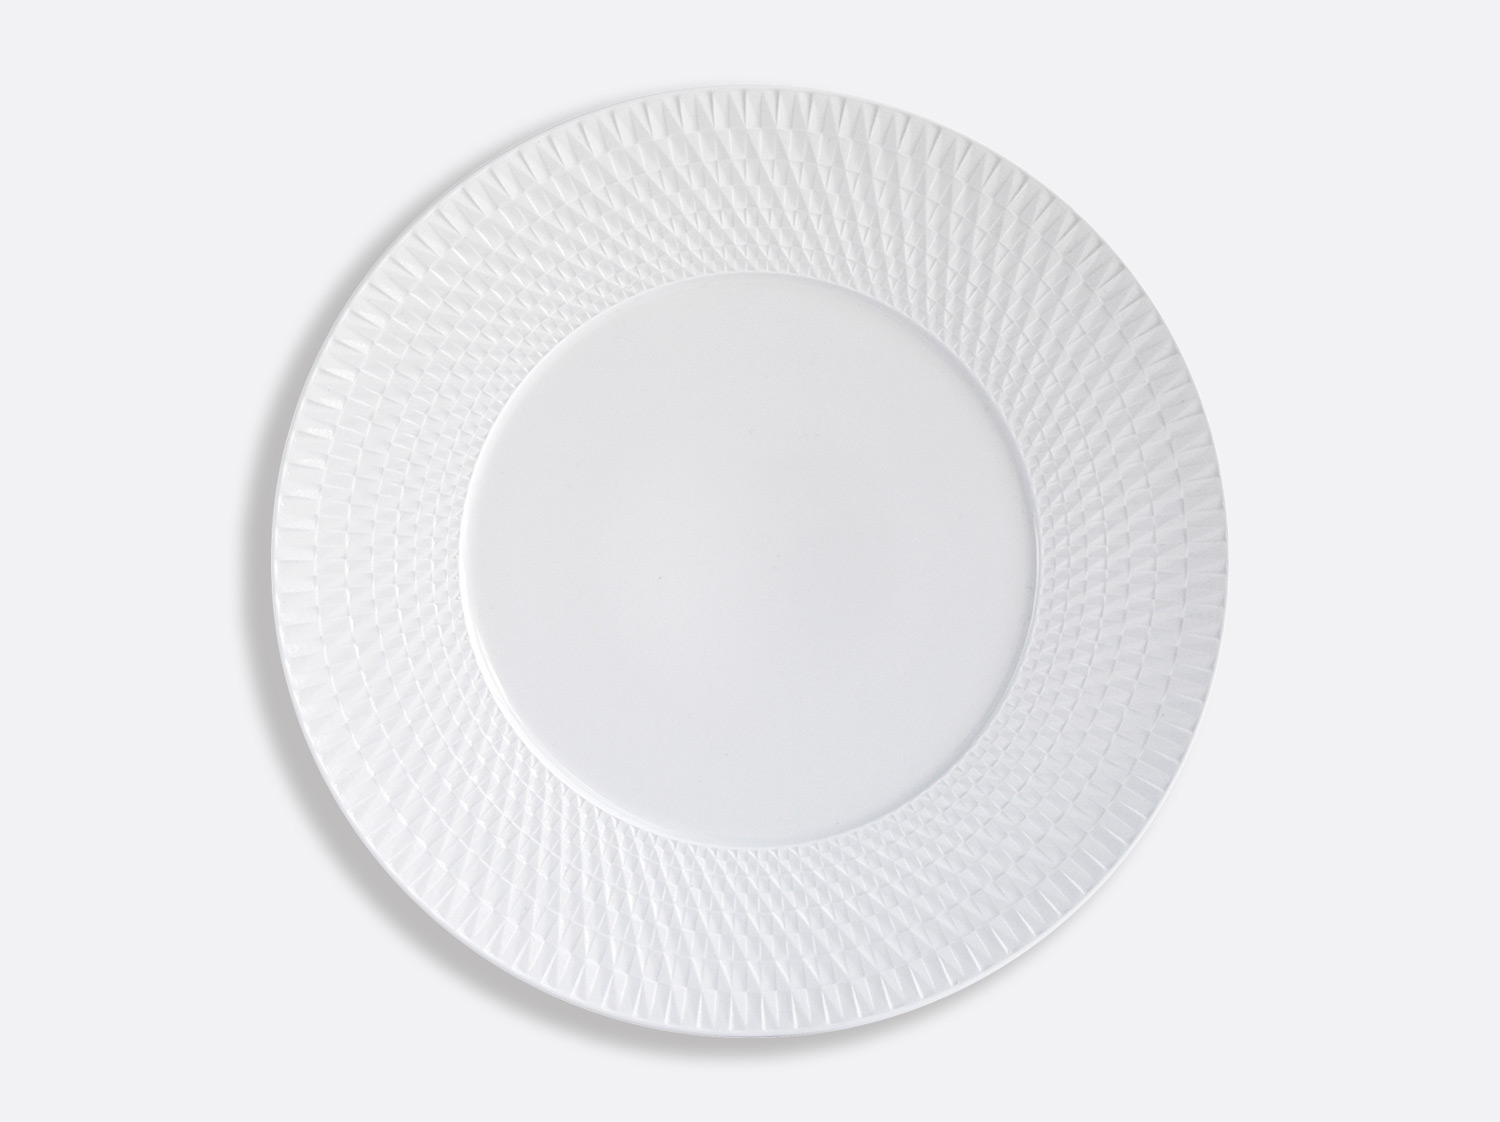 Assiette de présentation 29,5 cm en porcelaine de la collection Twist Bernardaud